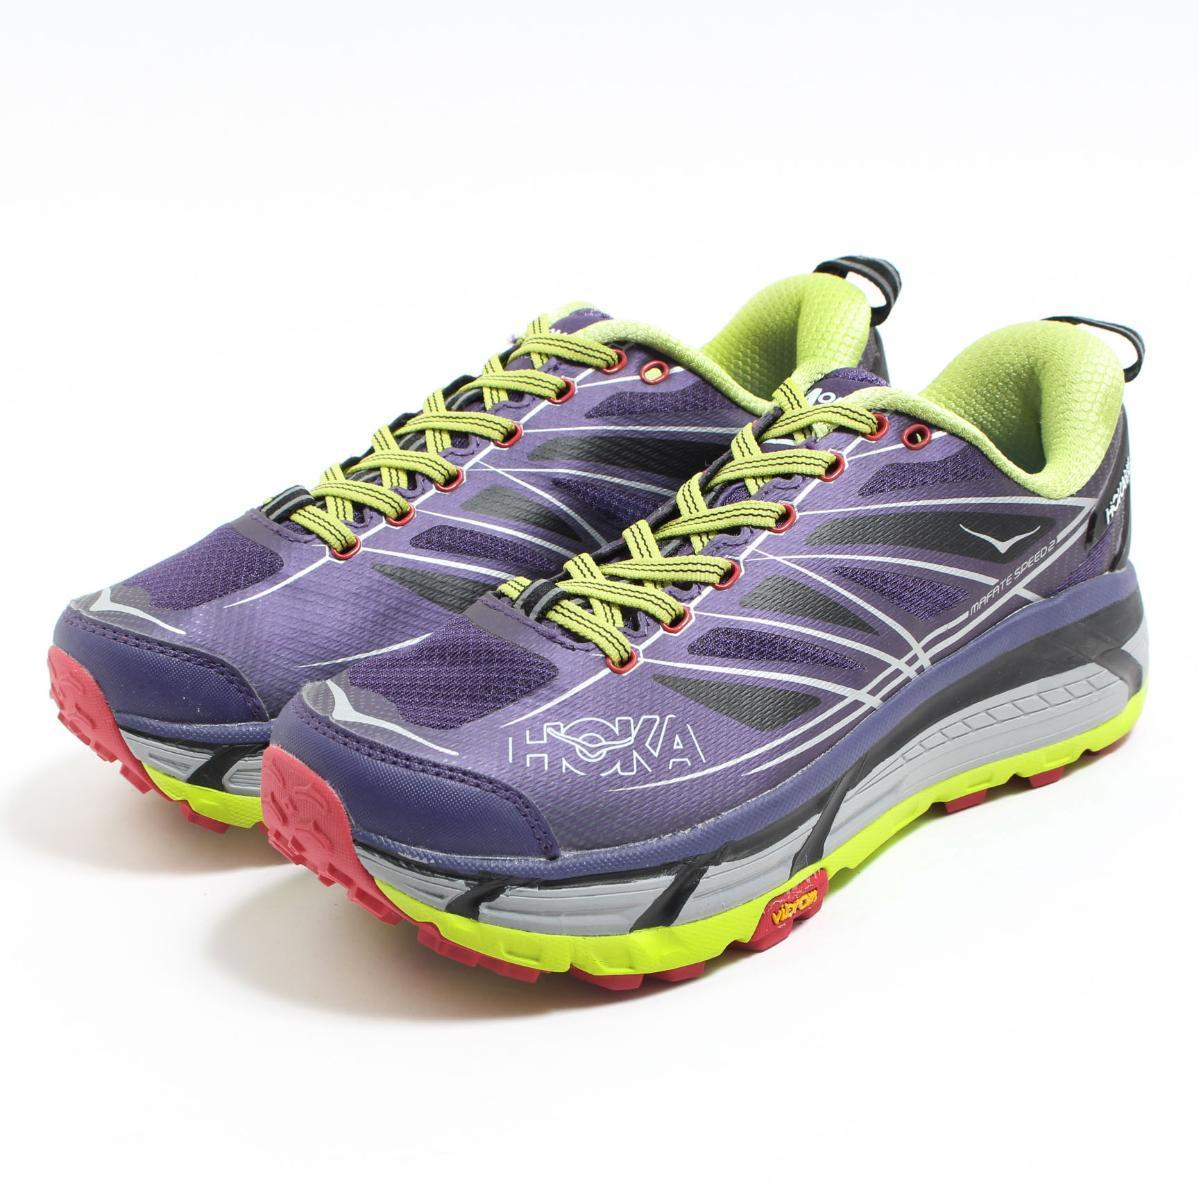 new product 50ba3 1e75d HOKA ONE ONE MAFATE SPEED 2 スニーカーダッドシューズ US7 .5 men's 25.5cm /boo5277